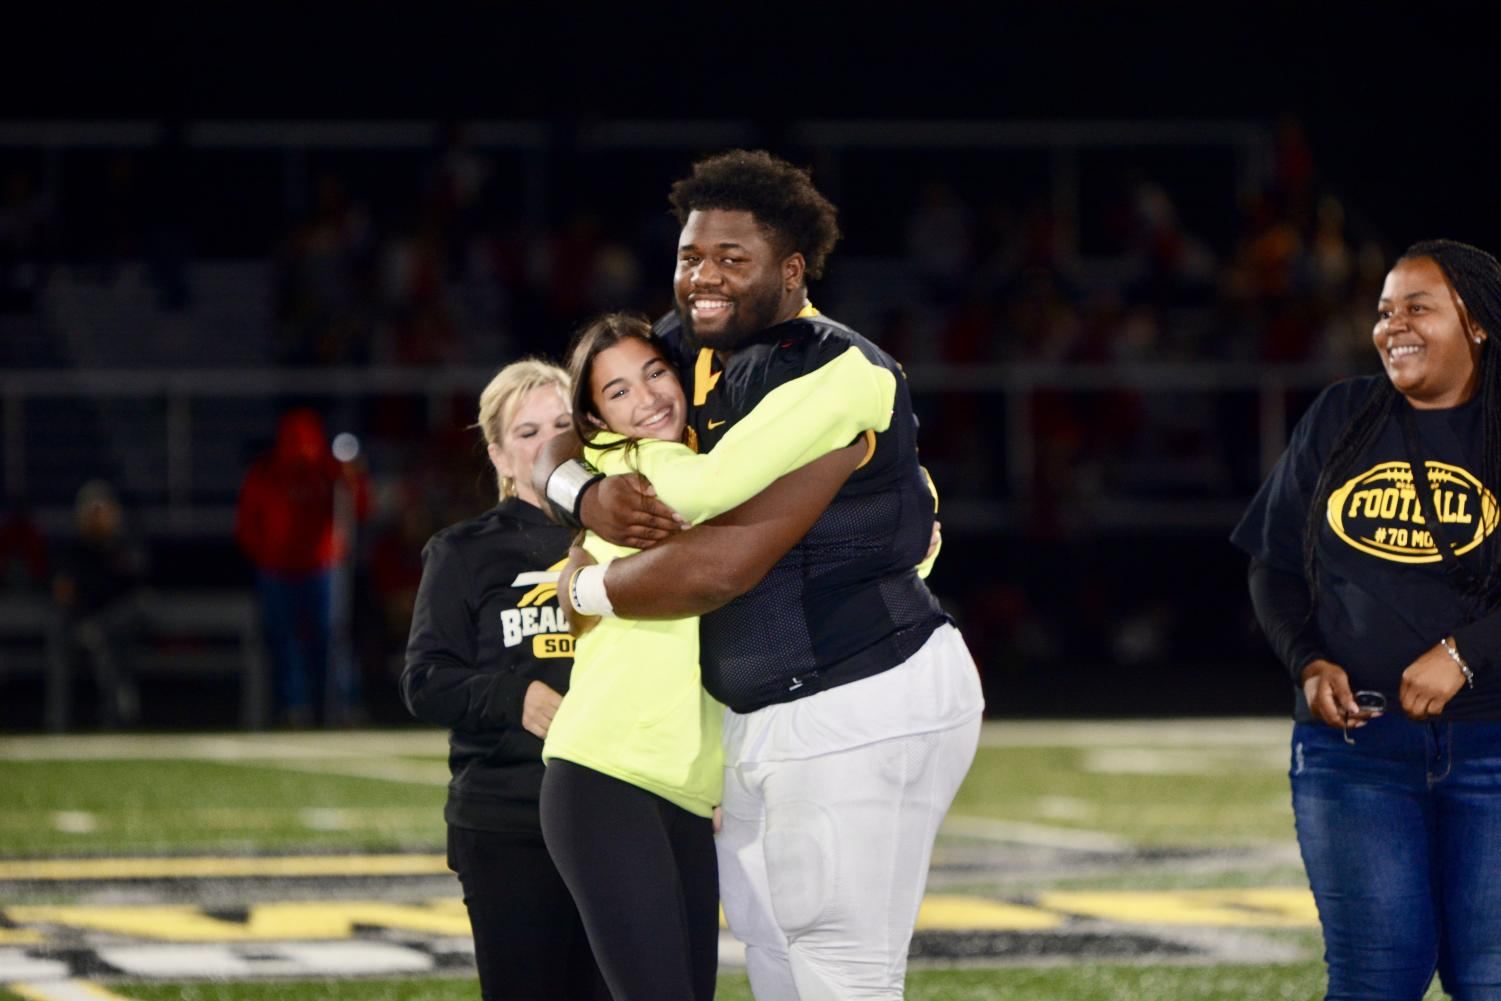 Petti and Roscoe celebrate with a hug after learning they were selected homecoming Queen and King.